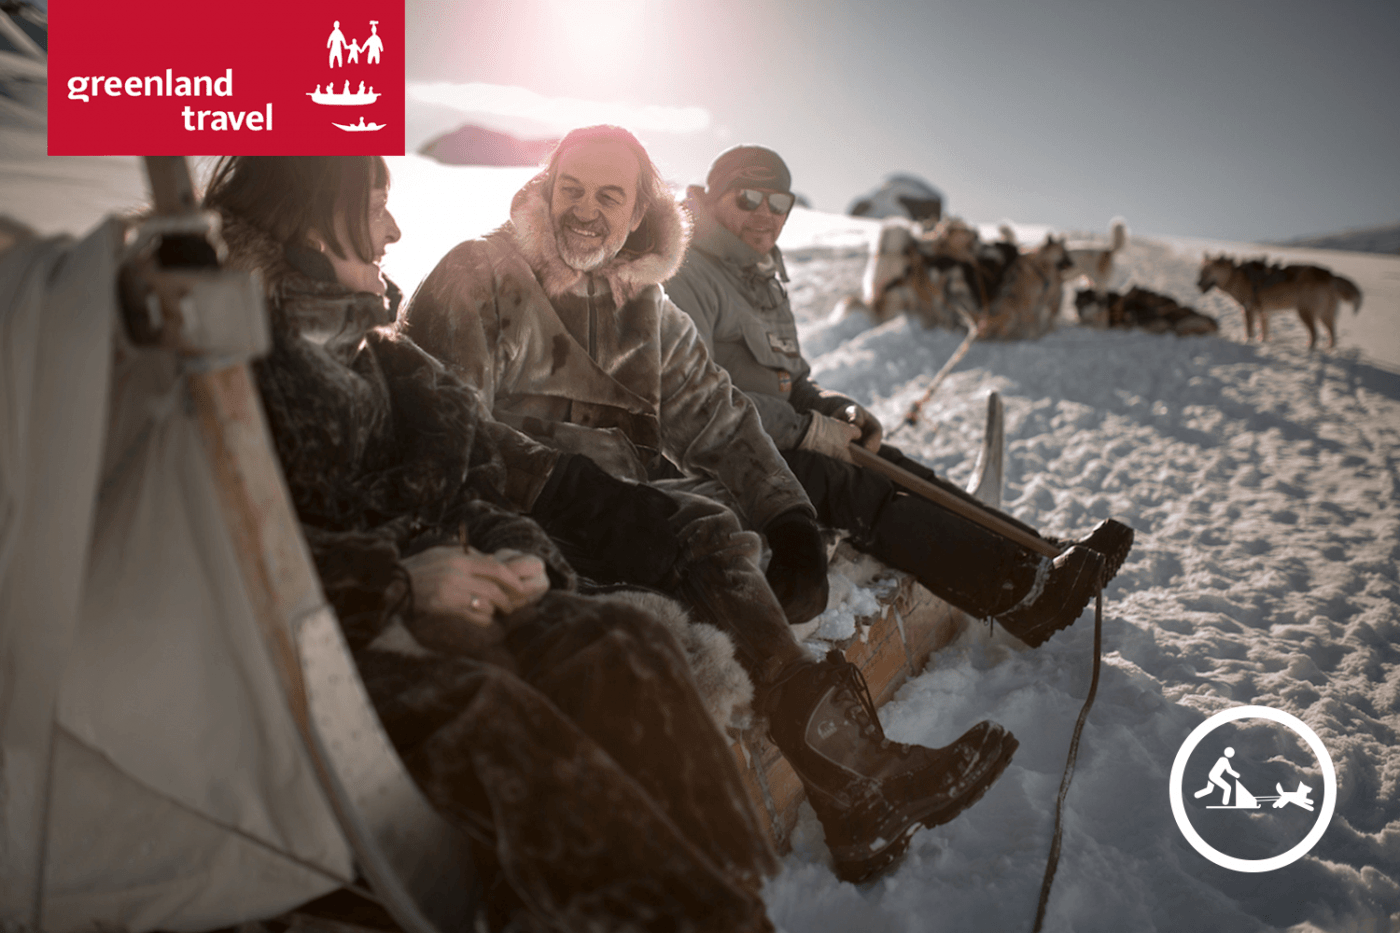 Greenland Travel: Wintertage in Grönland